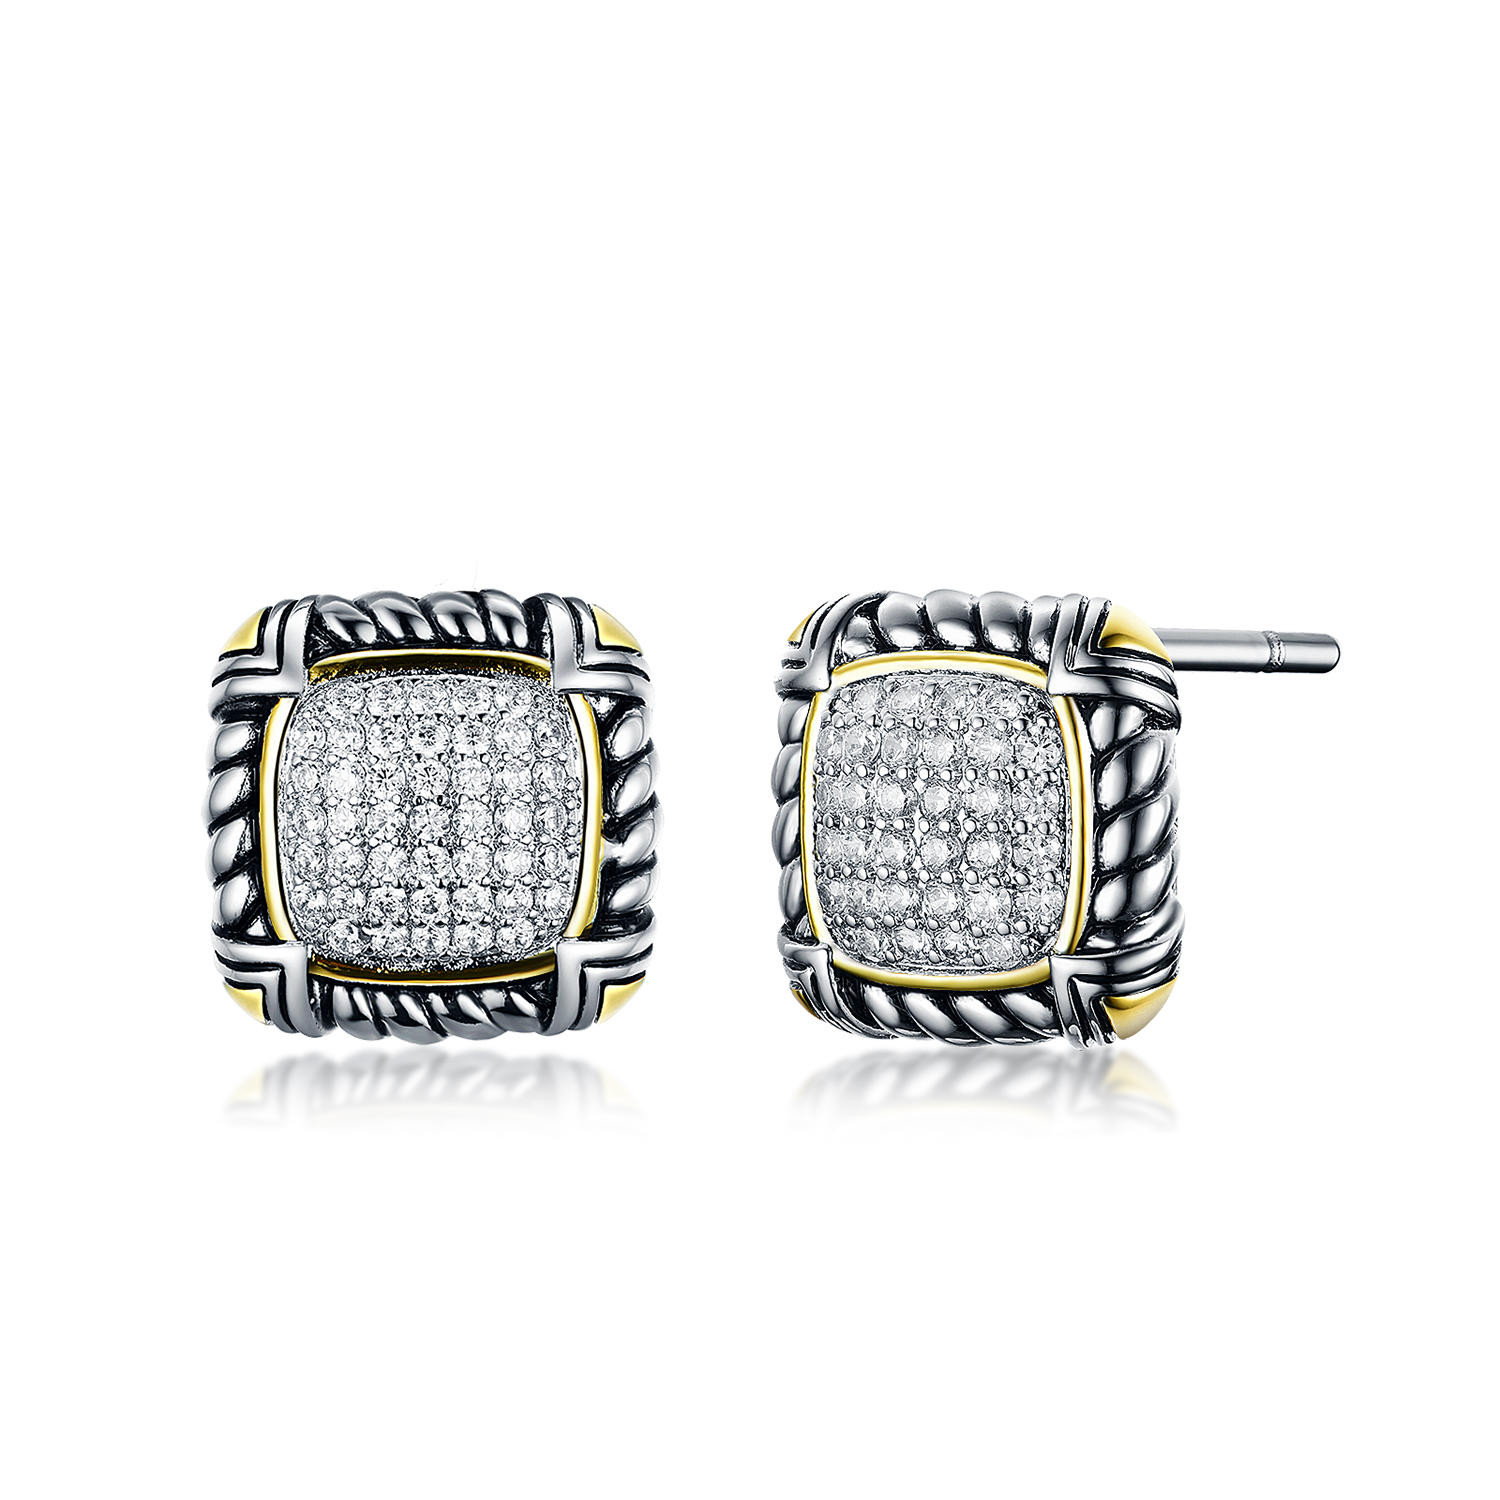 ST2697E-Designer inspired Cable texture 2-tone Square shape Earring with White Pave Cubic Zircon in Brass/Copper from China Top Jewelry vendor